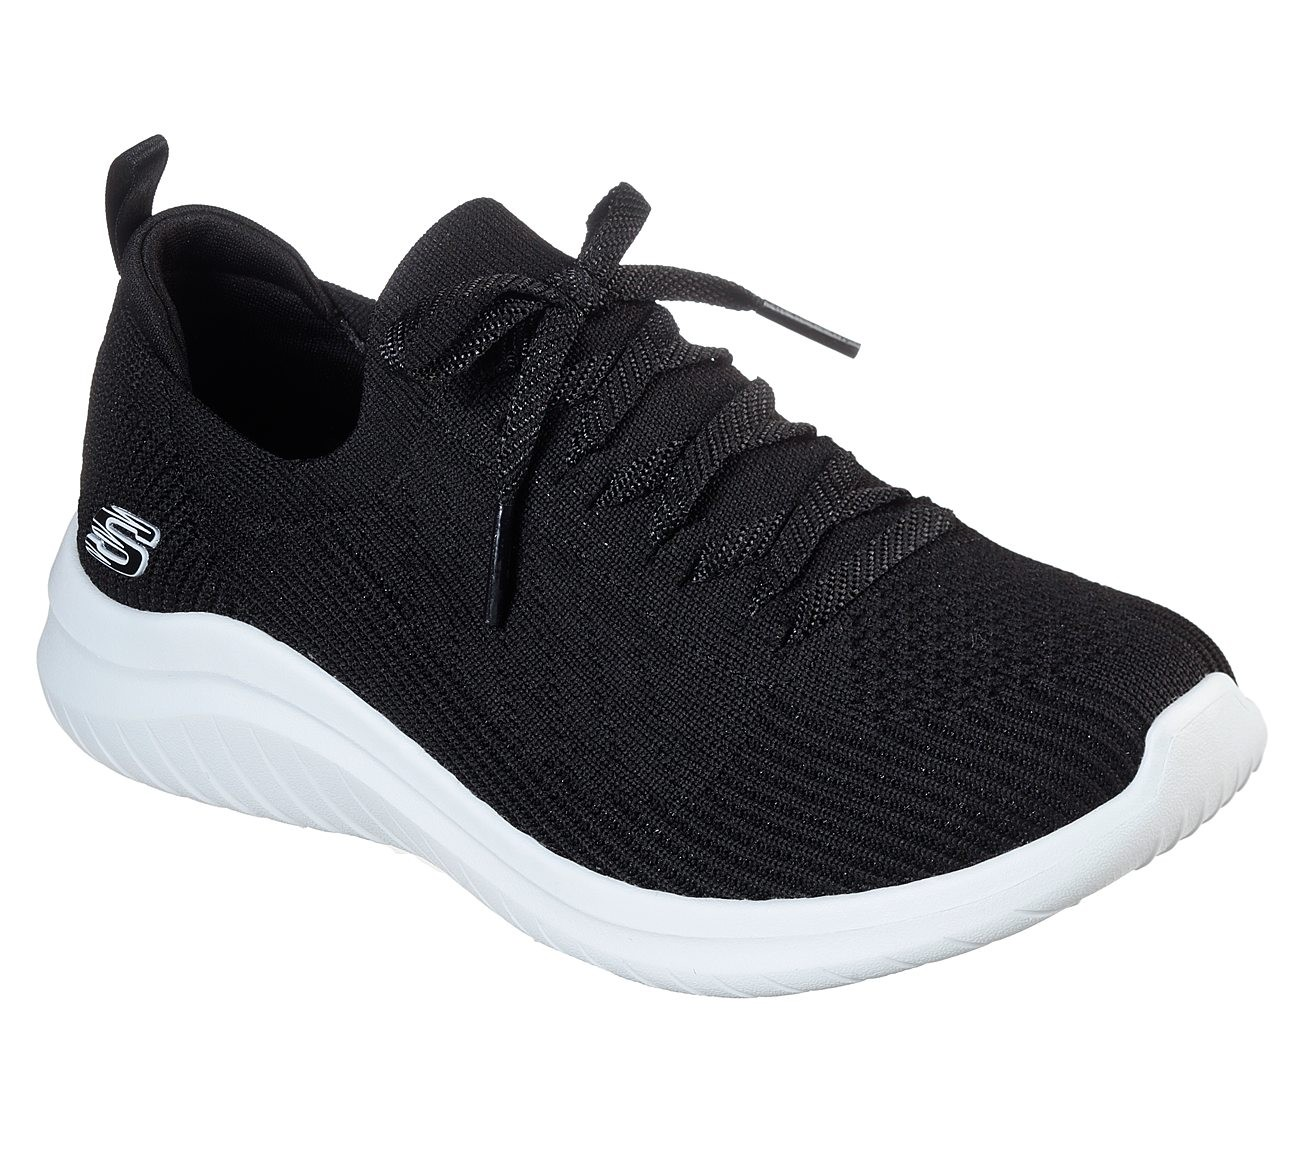 WHITE SKECHERS Womens Ultra Flex 2.0 Sneaker